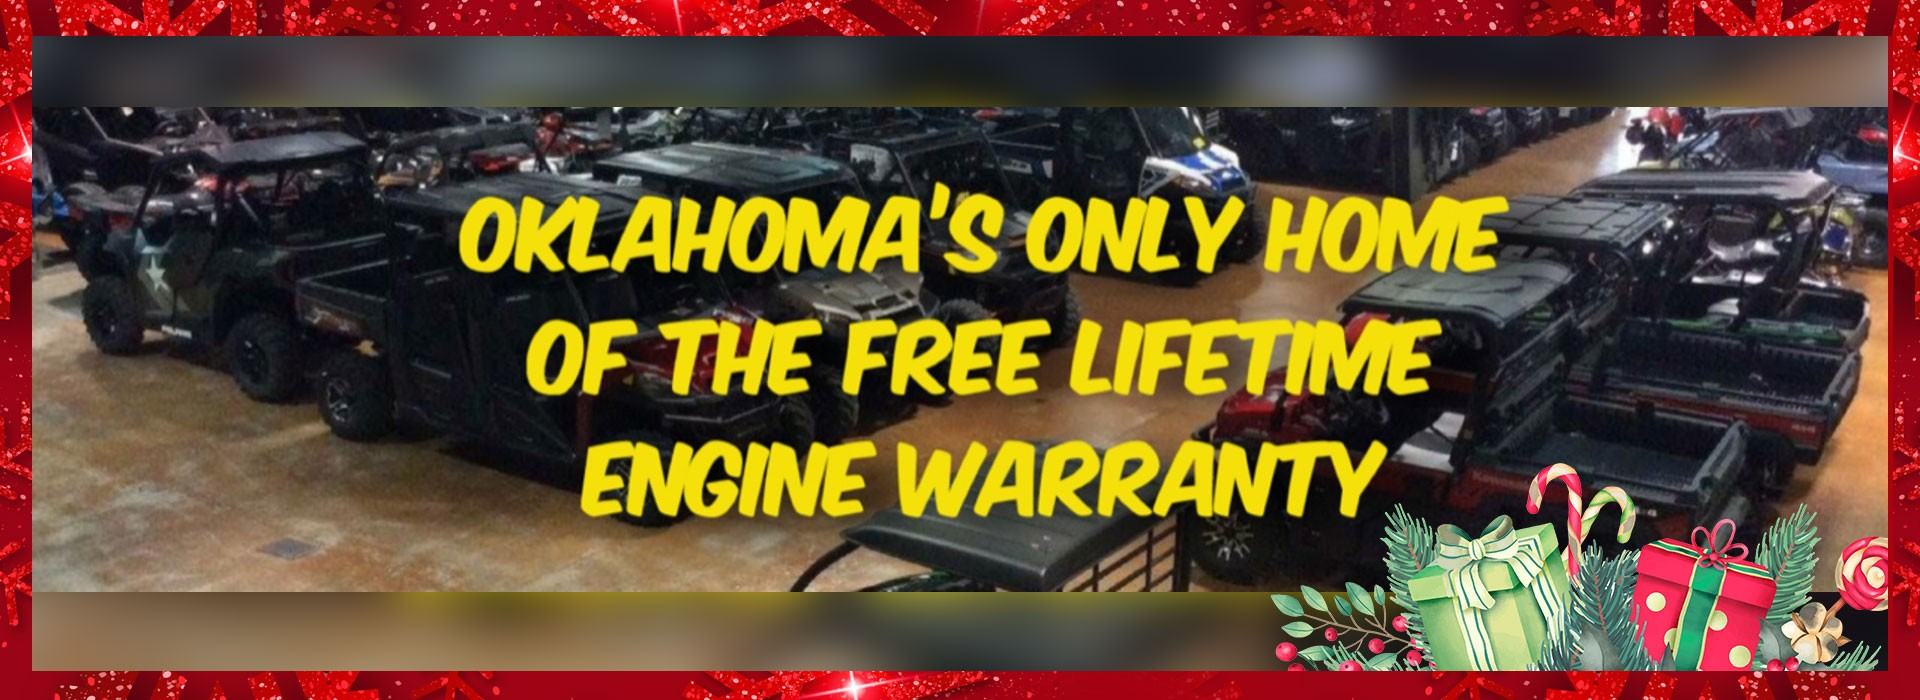 Oklahoma's only home of the free lifetime engine   warranty